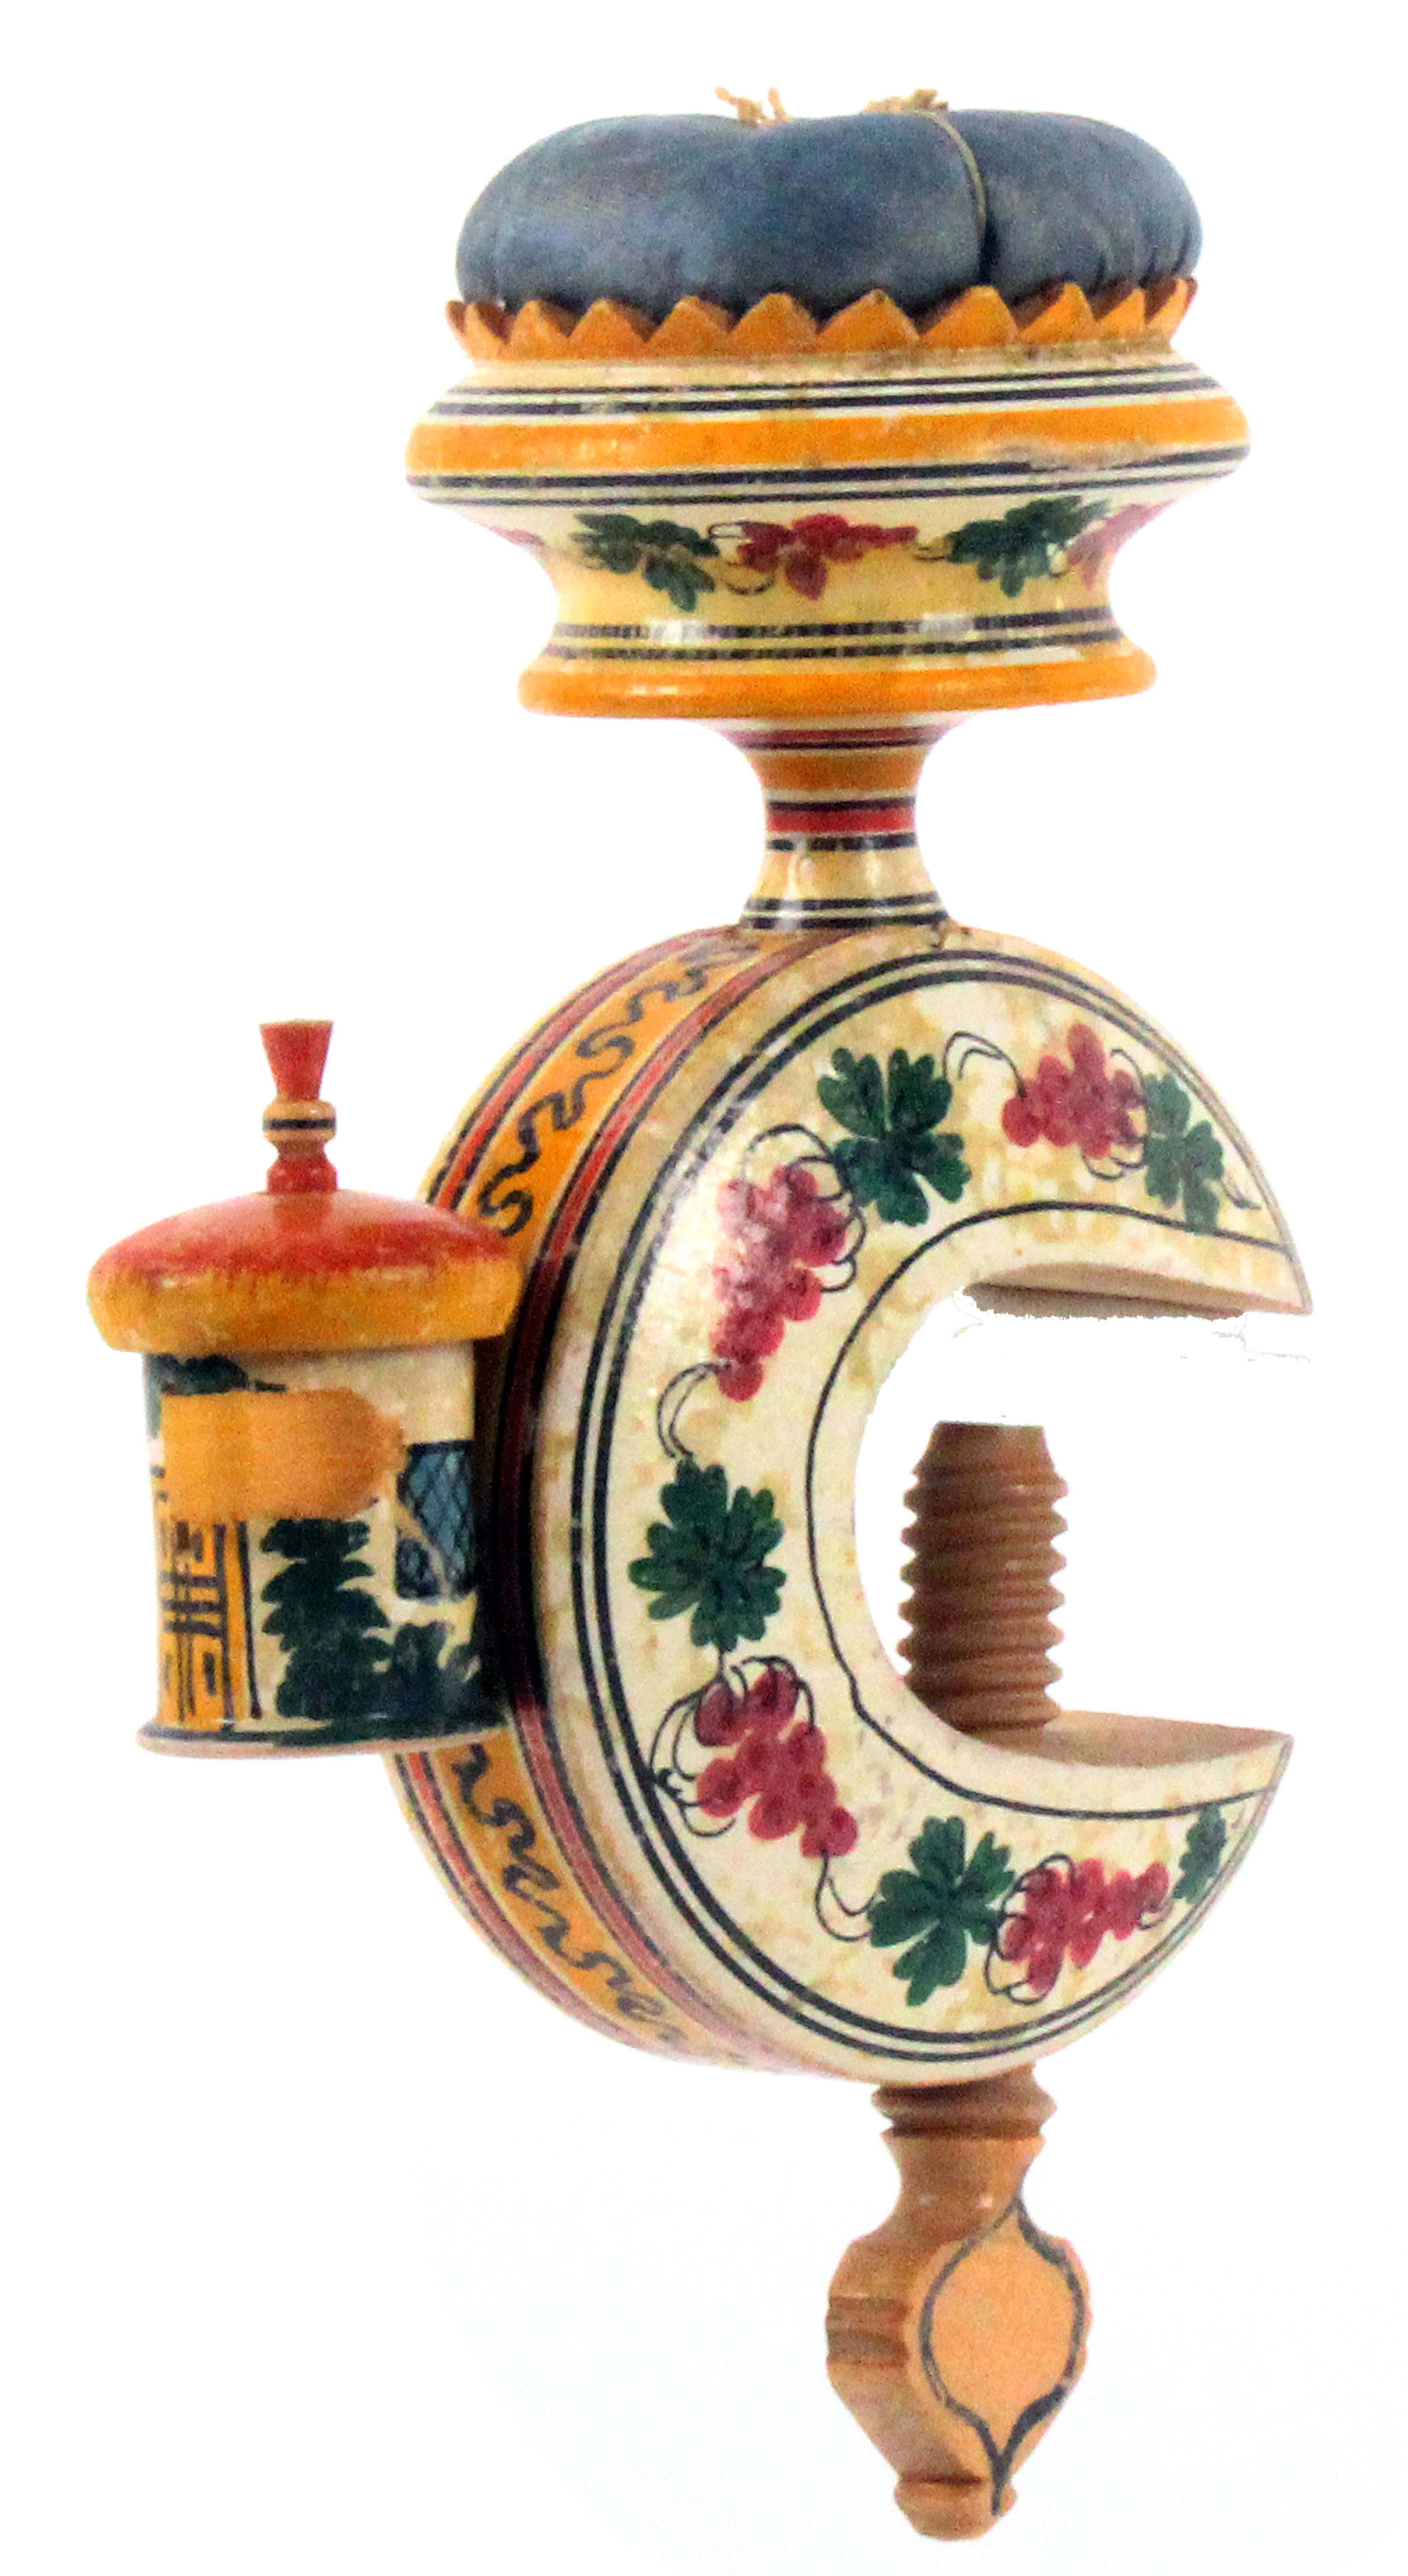 A Tunbridge ware white wood painted cottage sewing clamp, the 'C' form frame painted with fruiting